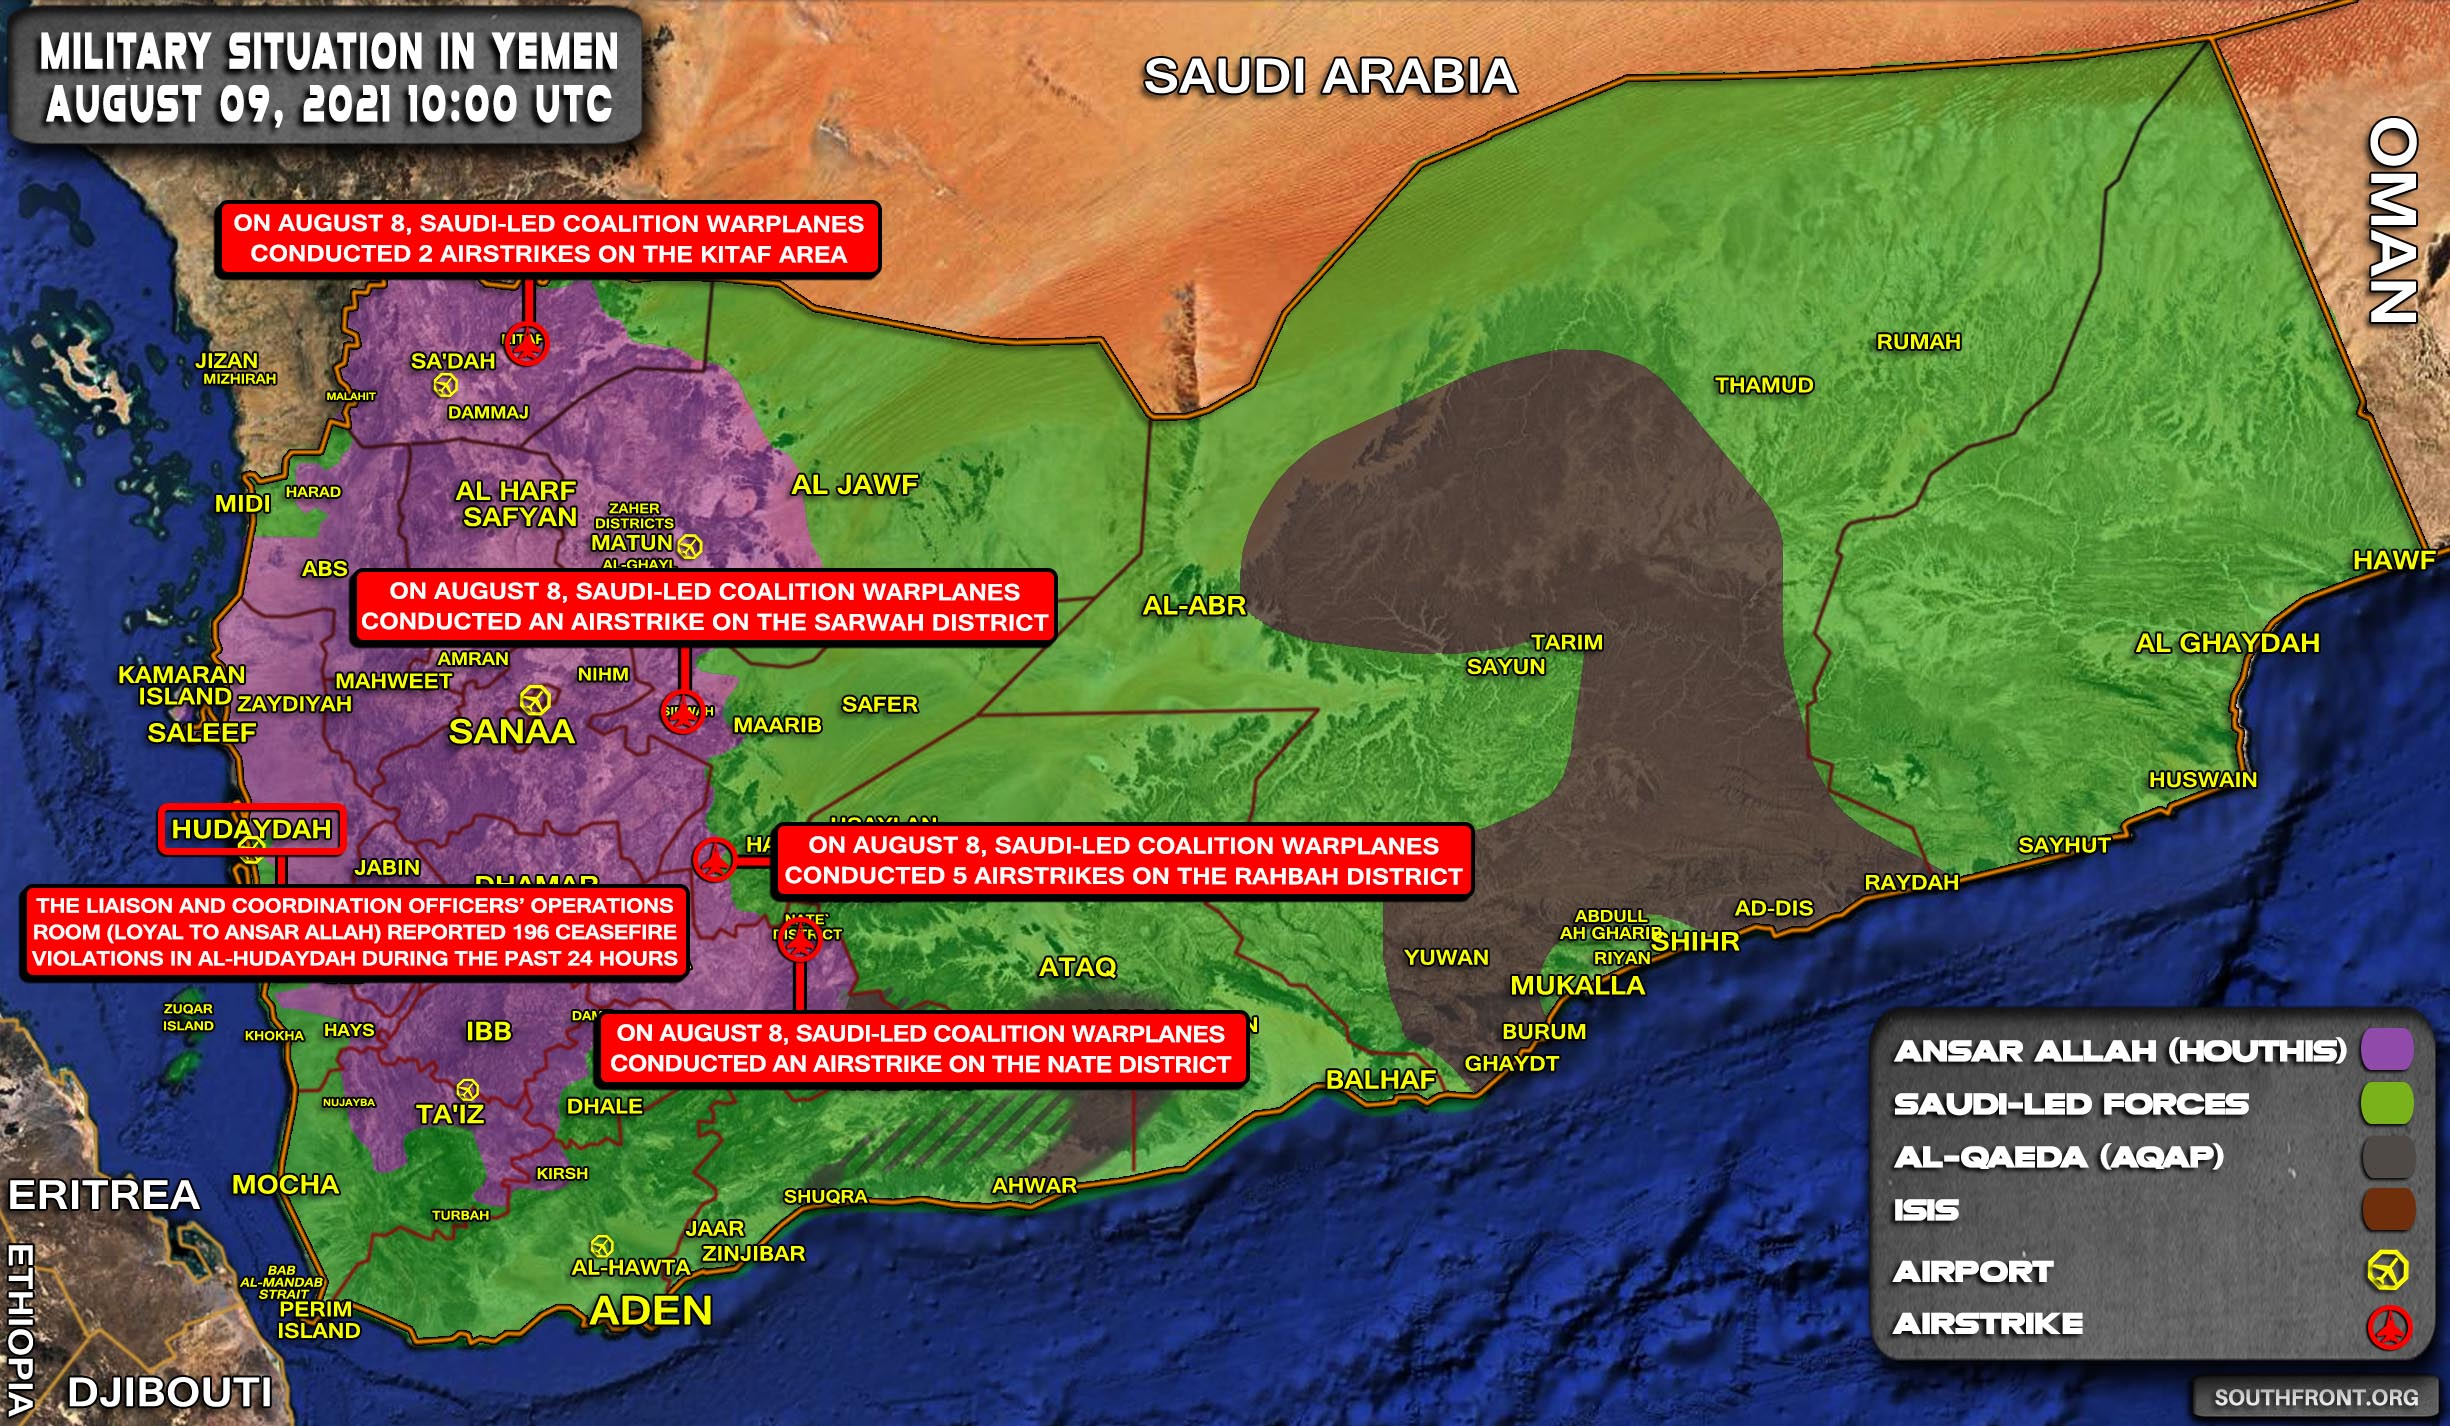 Military Situation In Yemen On August 9, 2021 (Map Update)